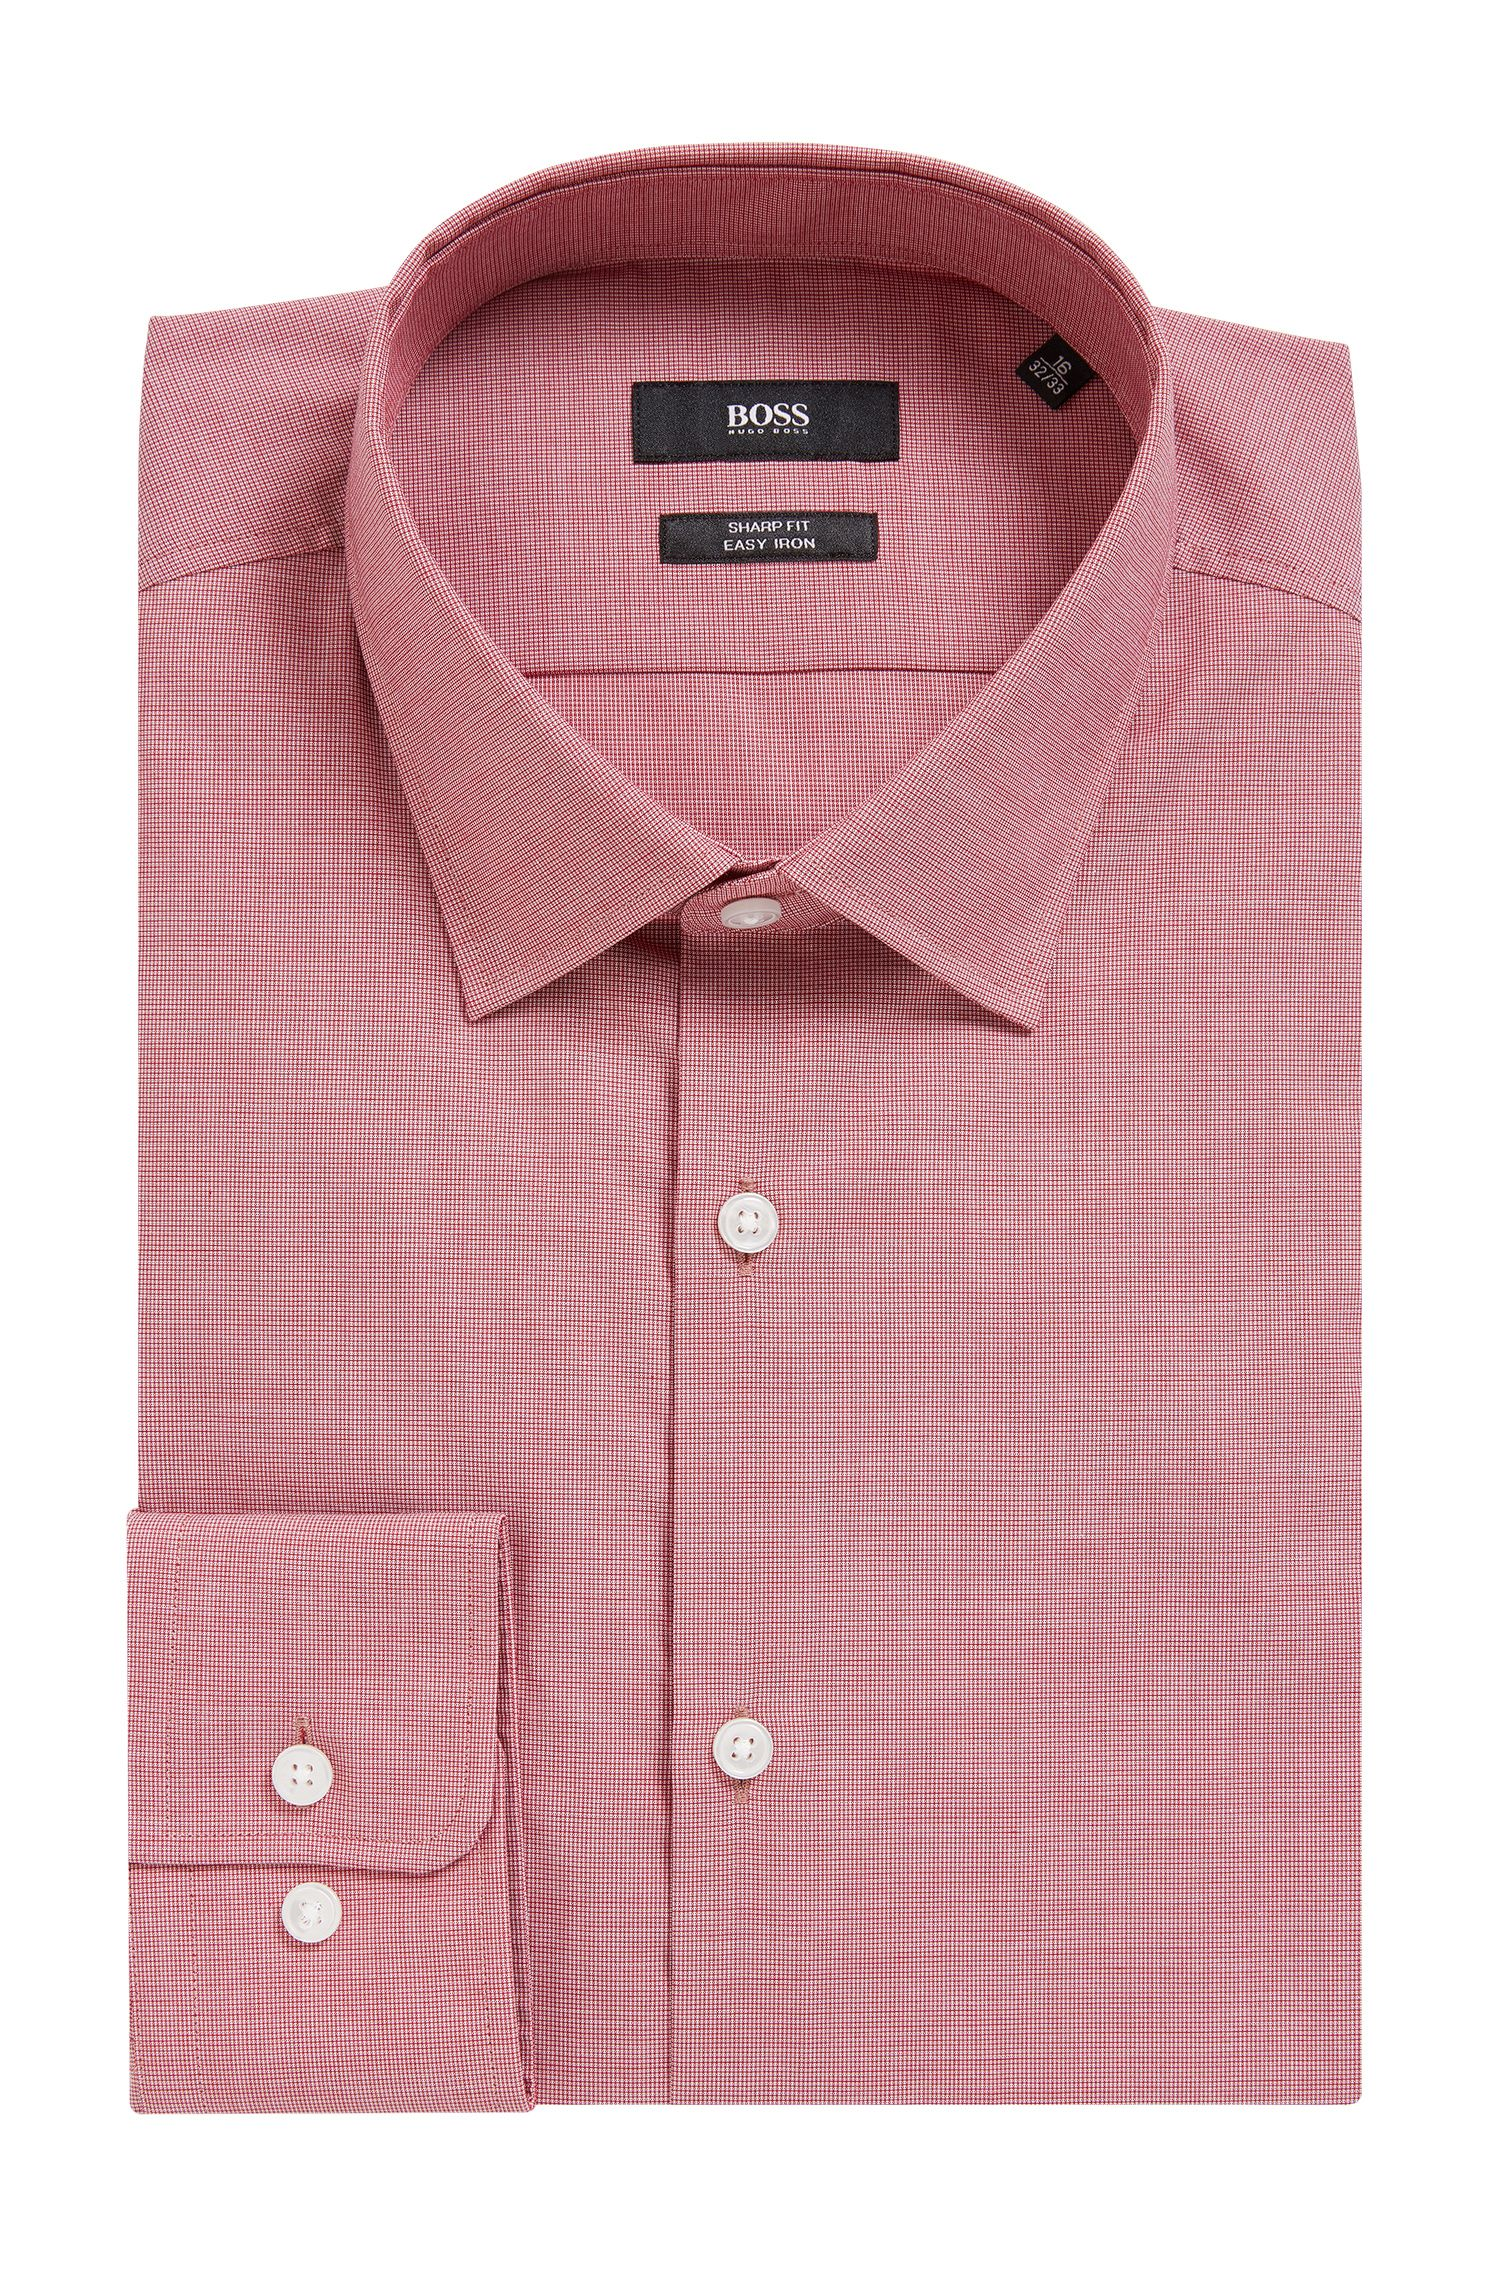 Textured Cotton Dress Shirt, Sharp Fit | Marley US